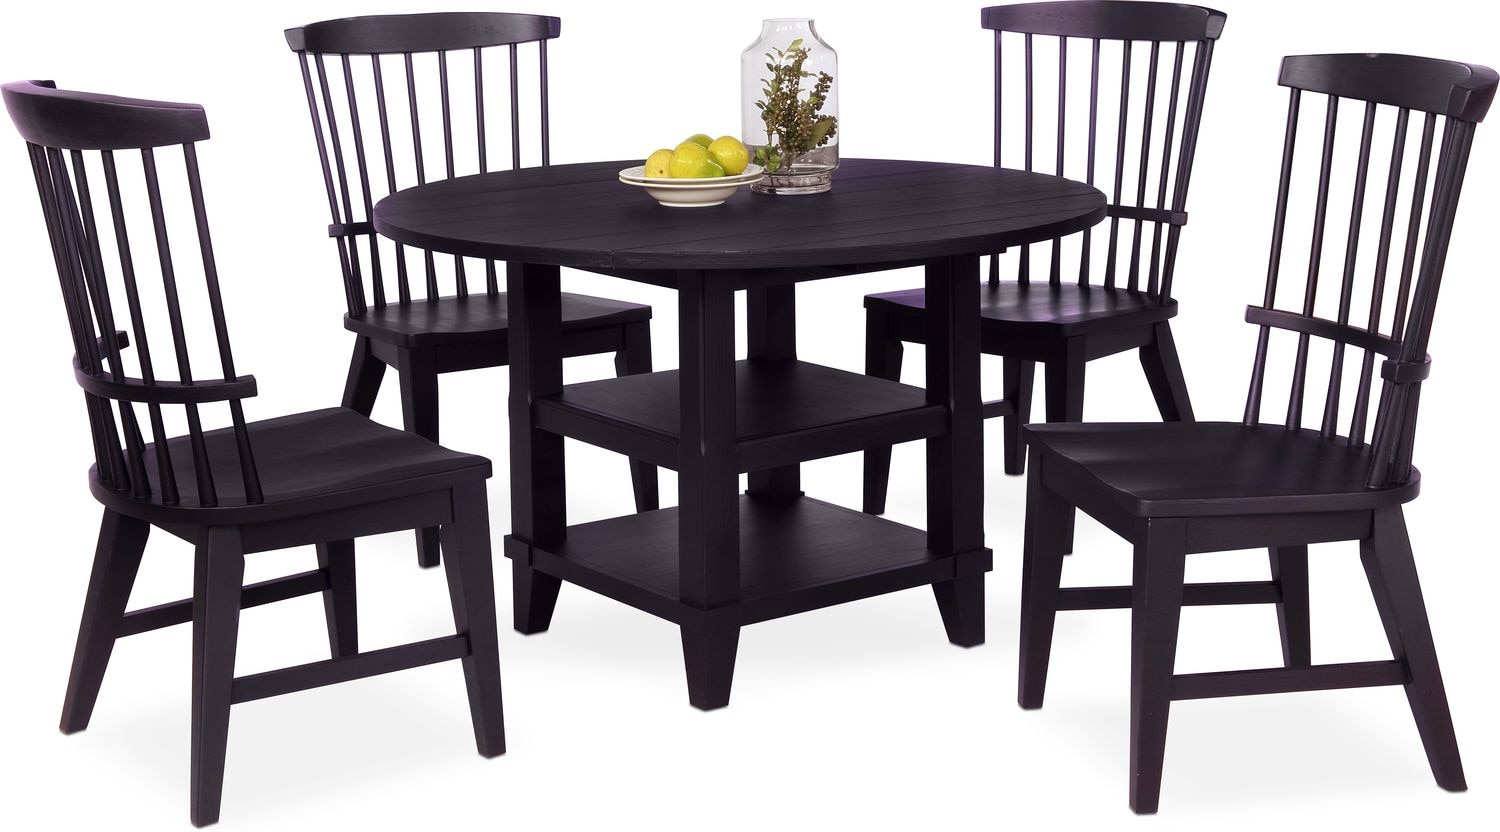 new haven round dining table and 4 windsor side chairs. Black Bedroom Furniture Sets. Home Design Ideas